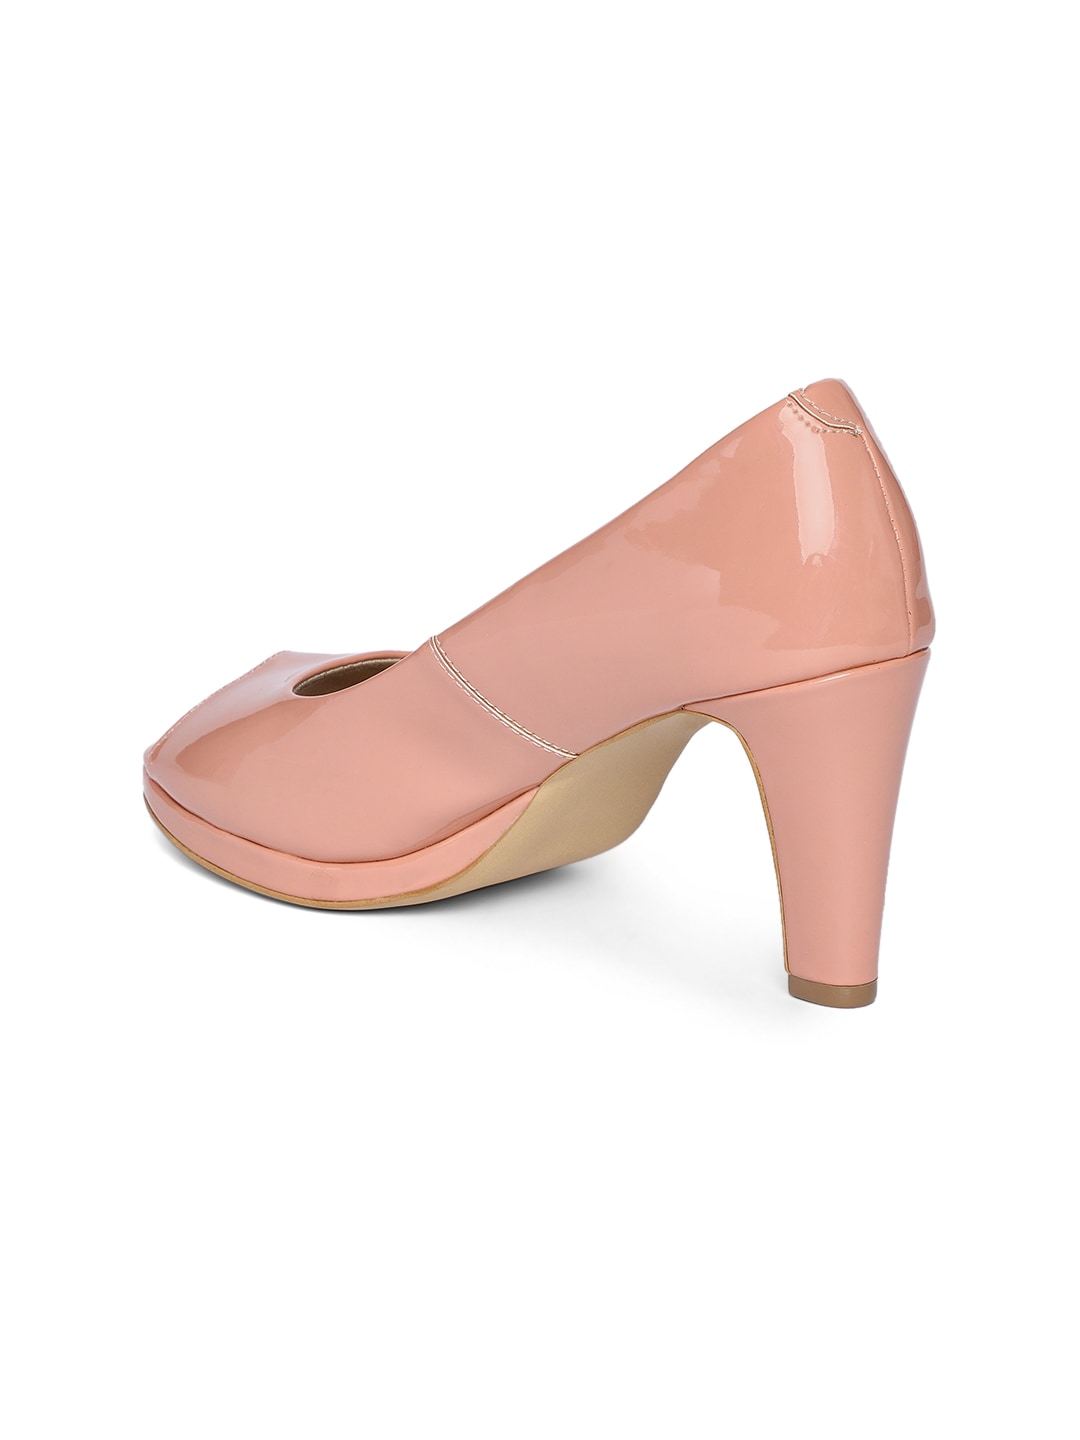 Inc 5 Women Nude-Coloured Solid Peep Toes